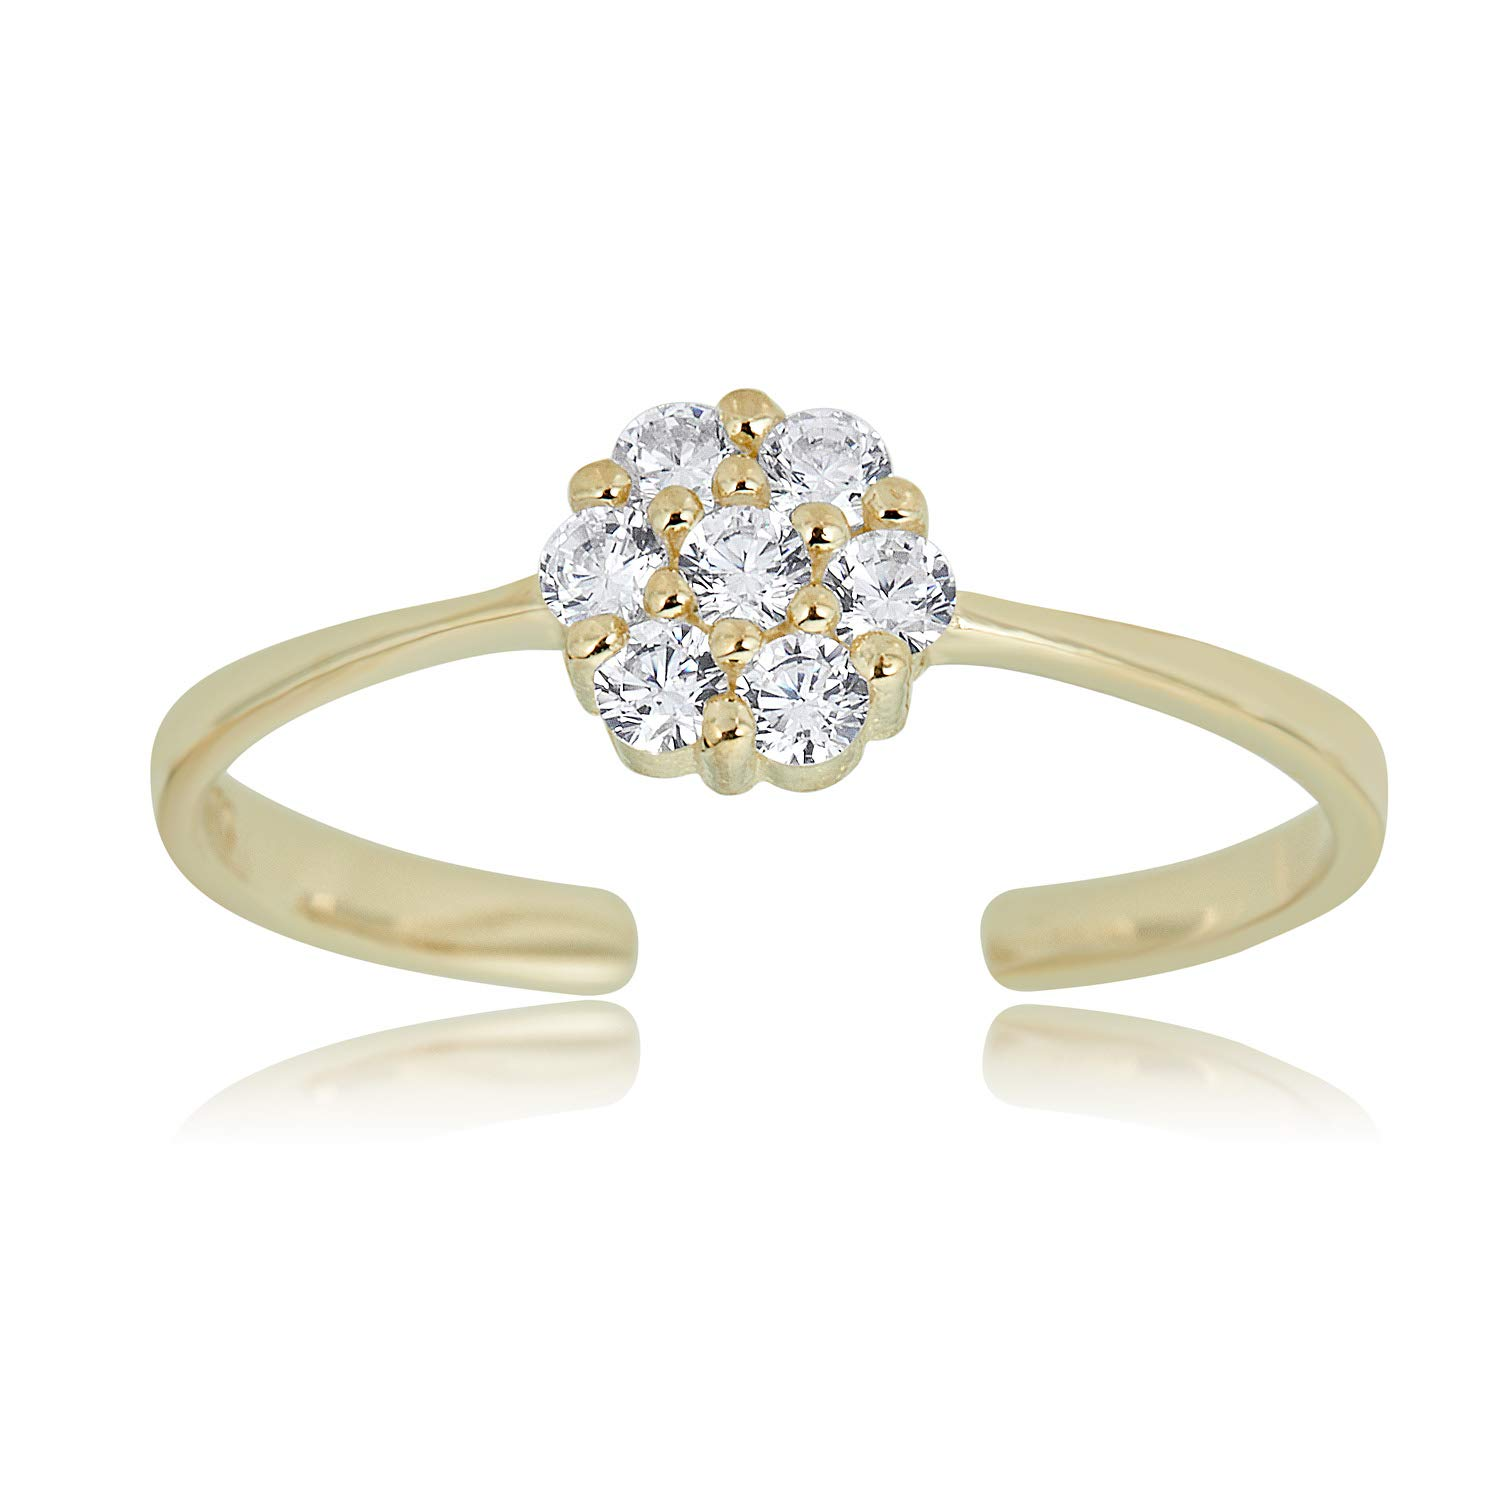 10K Yellow Gold Adjustable Flower Cluster Toe Ring with Simulated Diamond CZ by AVORA